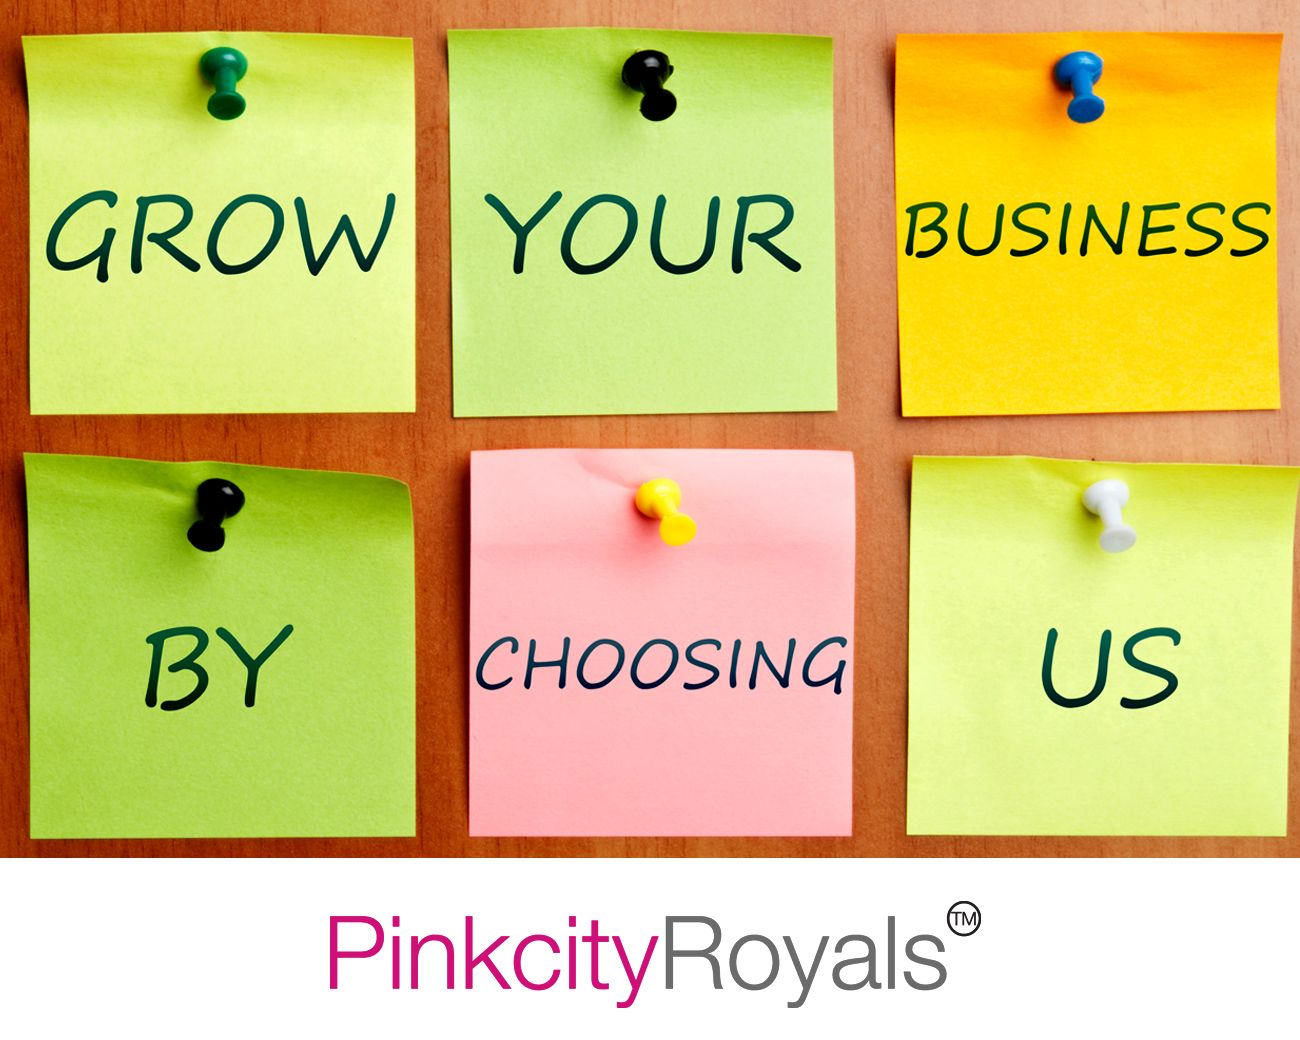 Go Ahead And Expand Your Business By Listing It In Pinkcityroyals